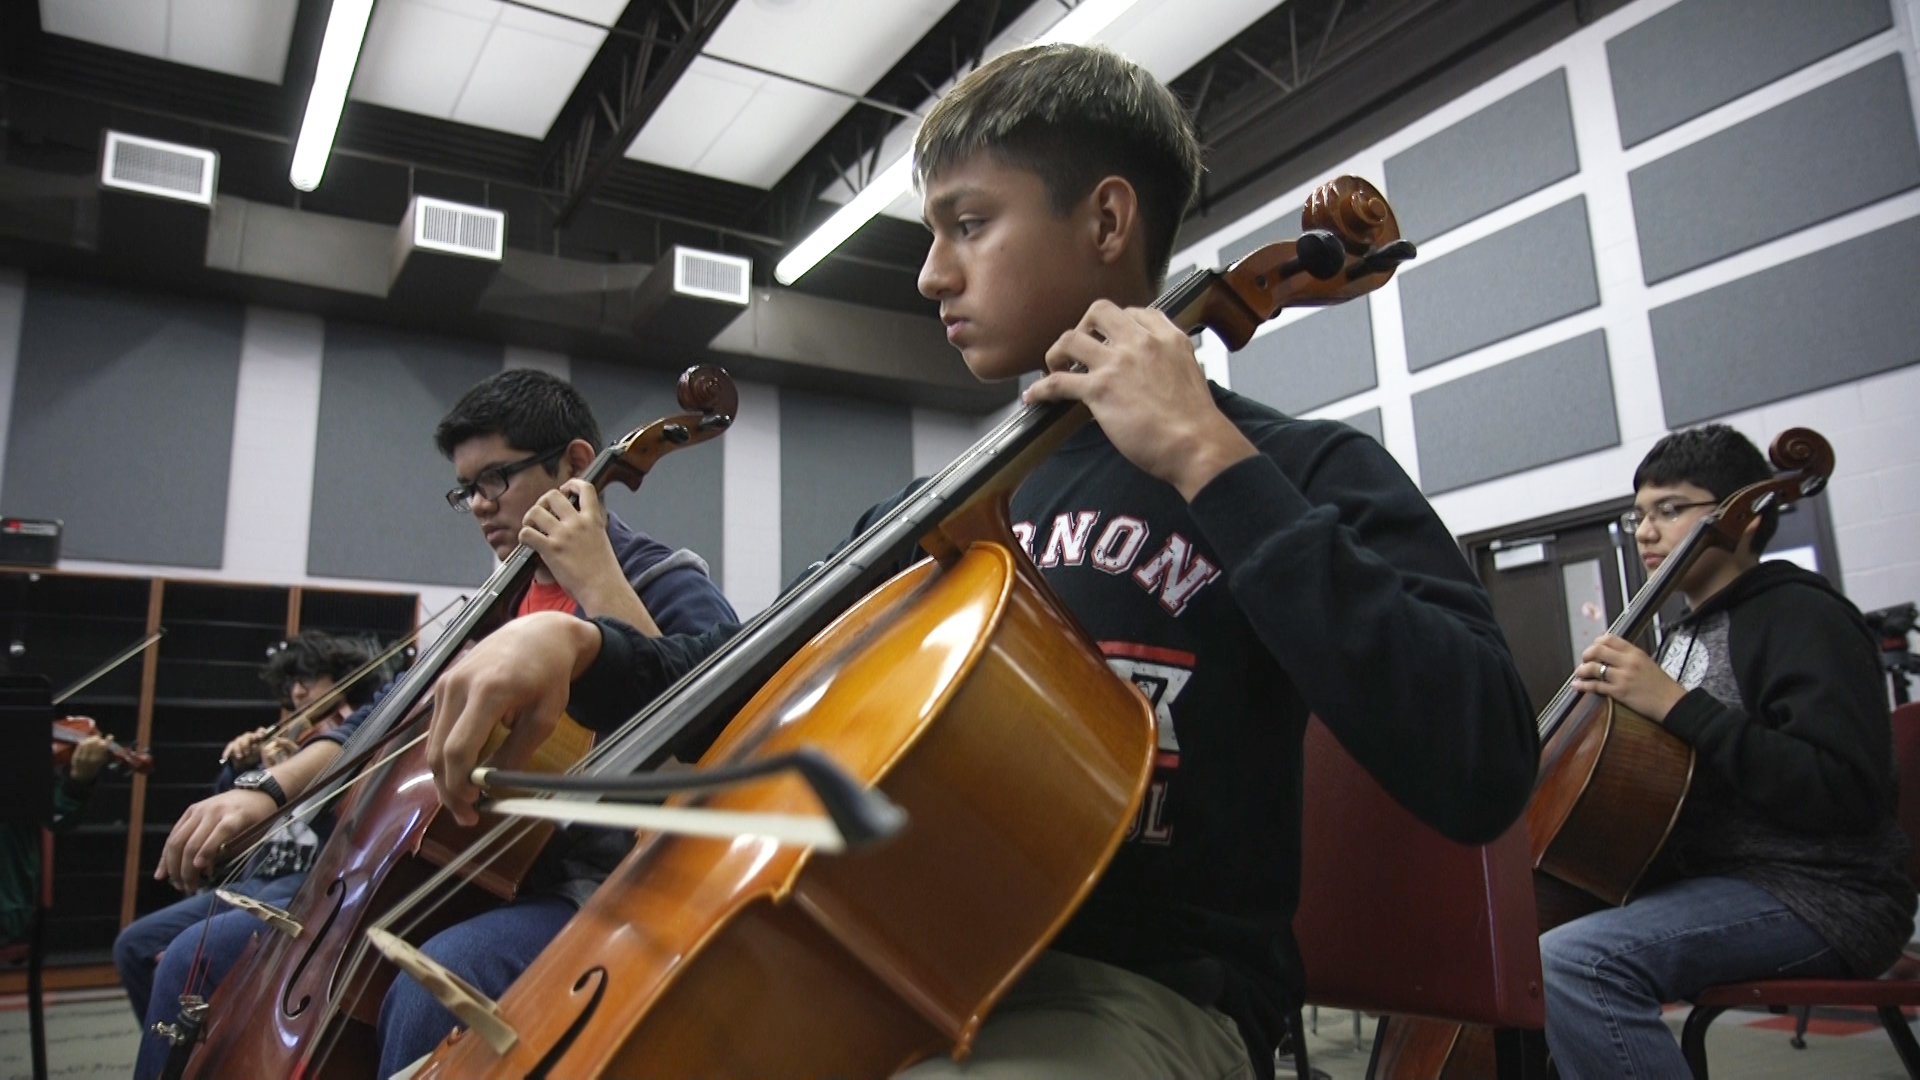 Vernon Music Department: Academic achievement through fine arts